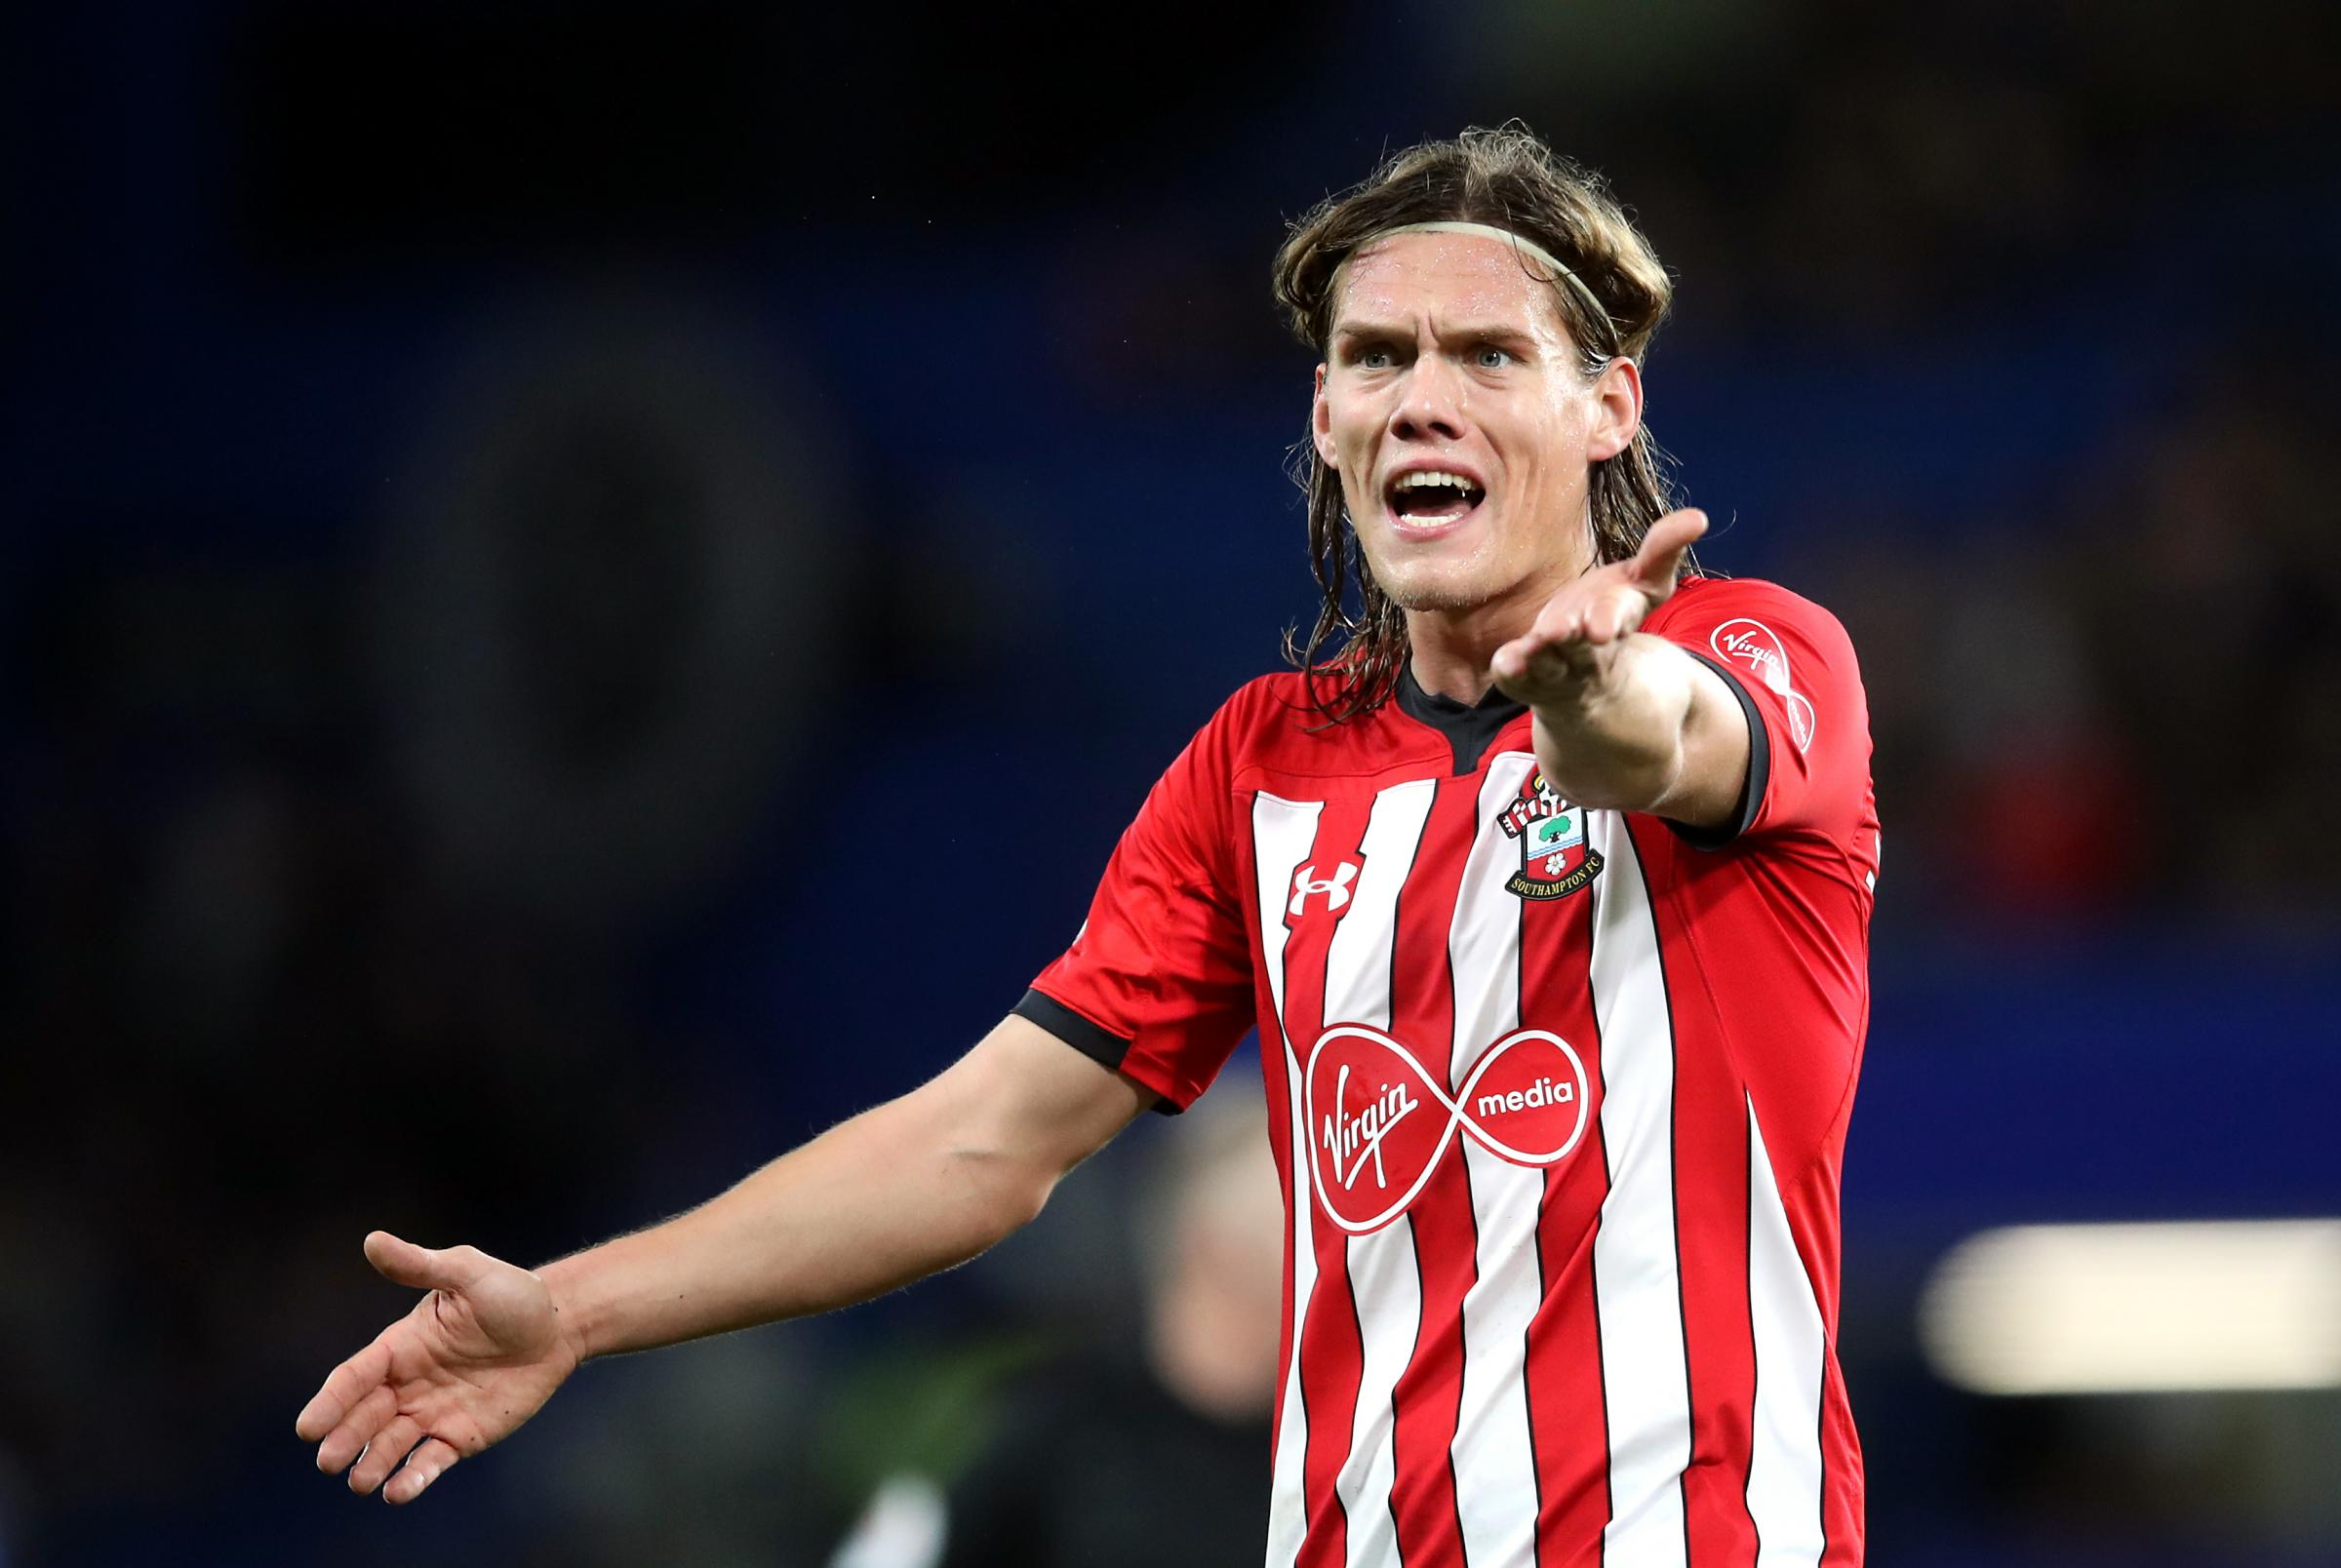 BIG INTERVIEW: Vestergaard opens up on his Saints career